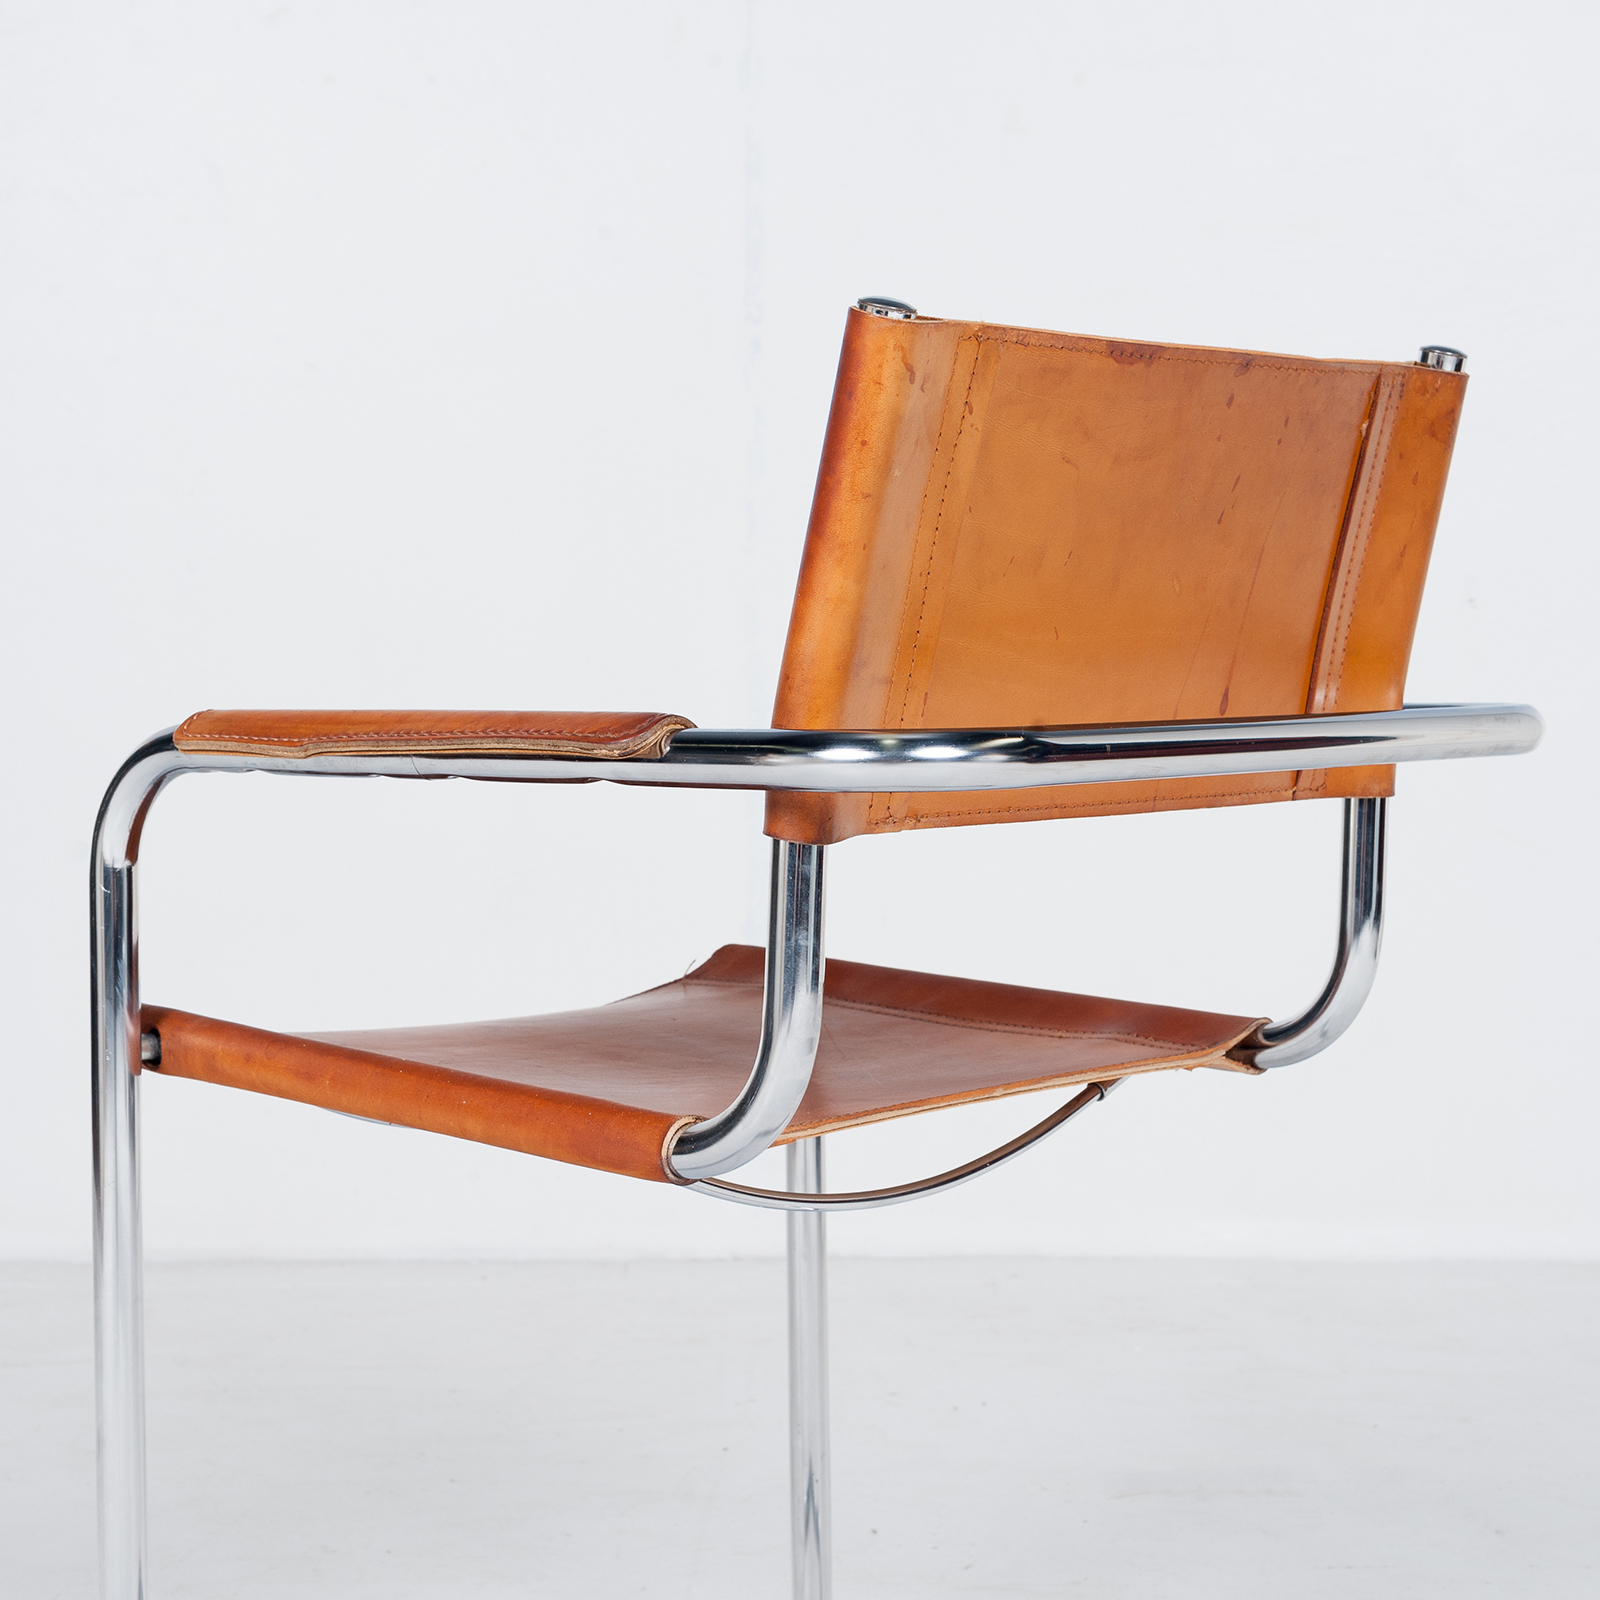 Set Of 4 Model S34 Cantilever Chairs In Tan Leather By Mart Stam For Thonet, 1980s, Germany28